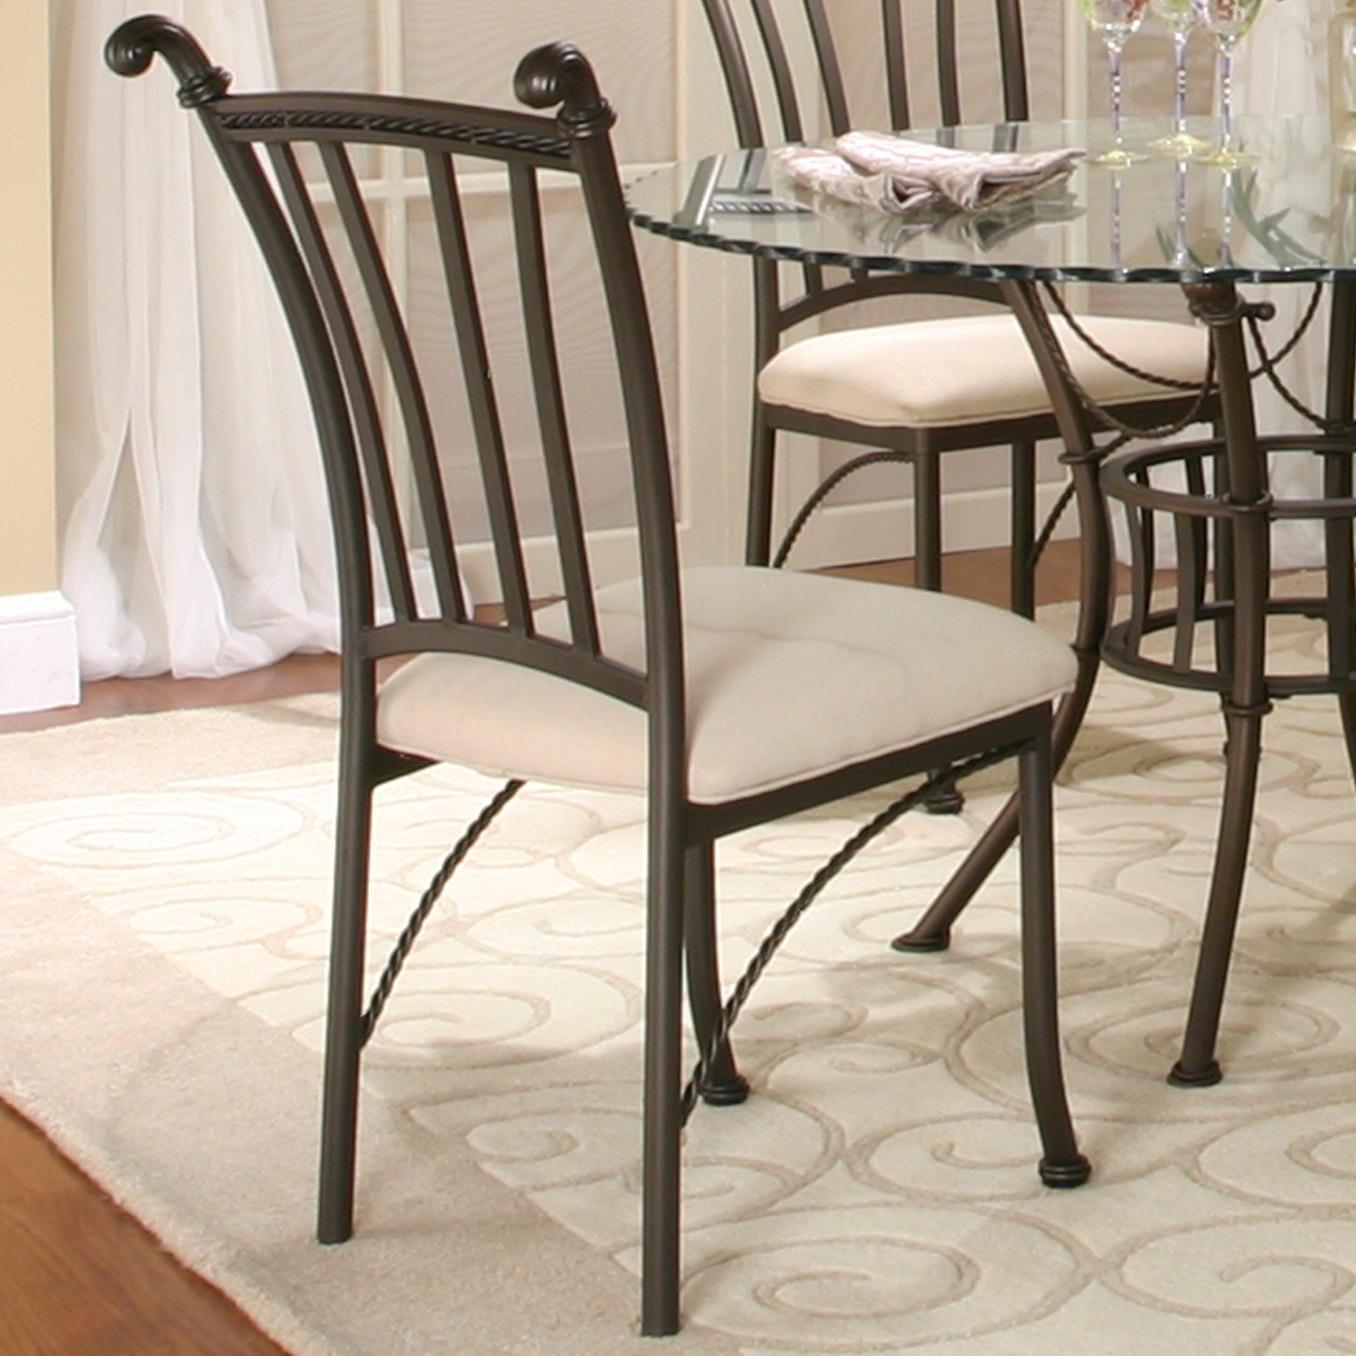 Denali Molten Earth/Stone Microsuede Side Chair by Cramco, Inc at Nassau Furniture and Mattress